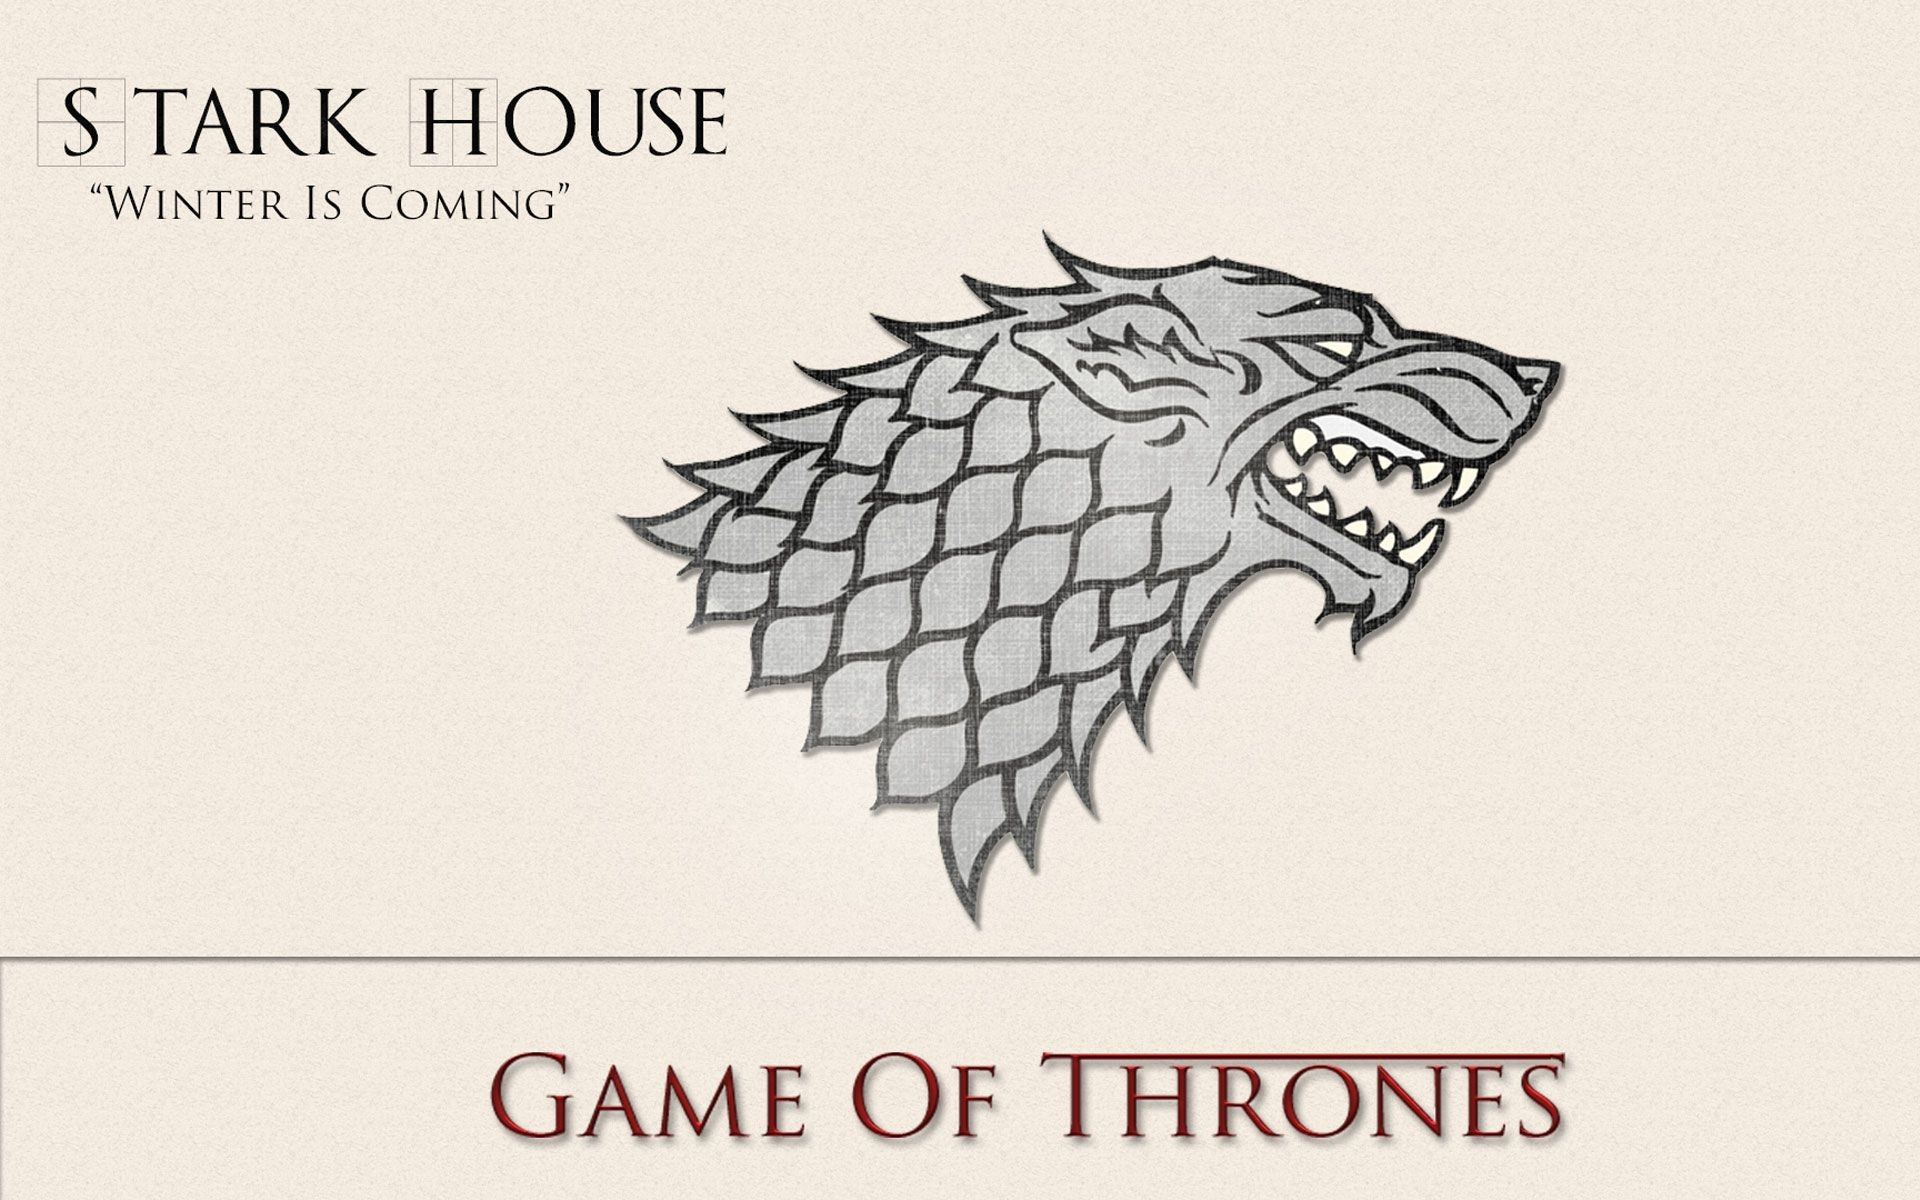 1920x1200 Game of thrones emblems wallpaper